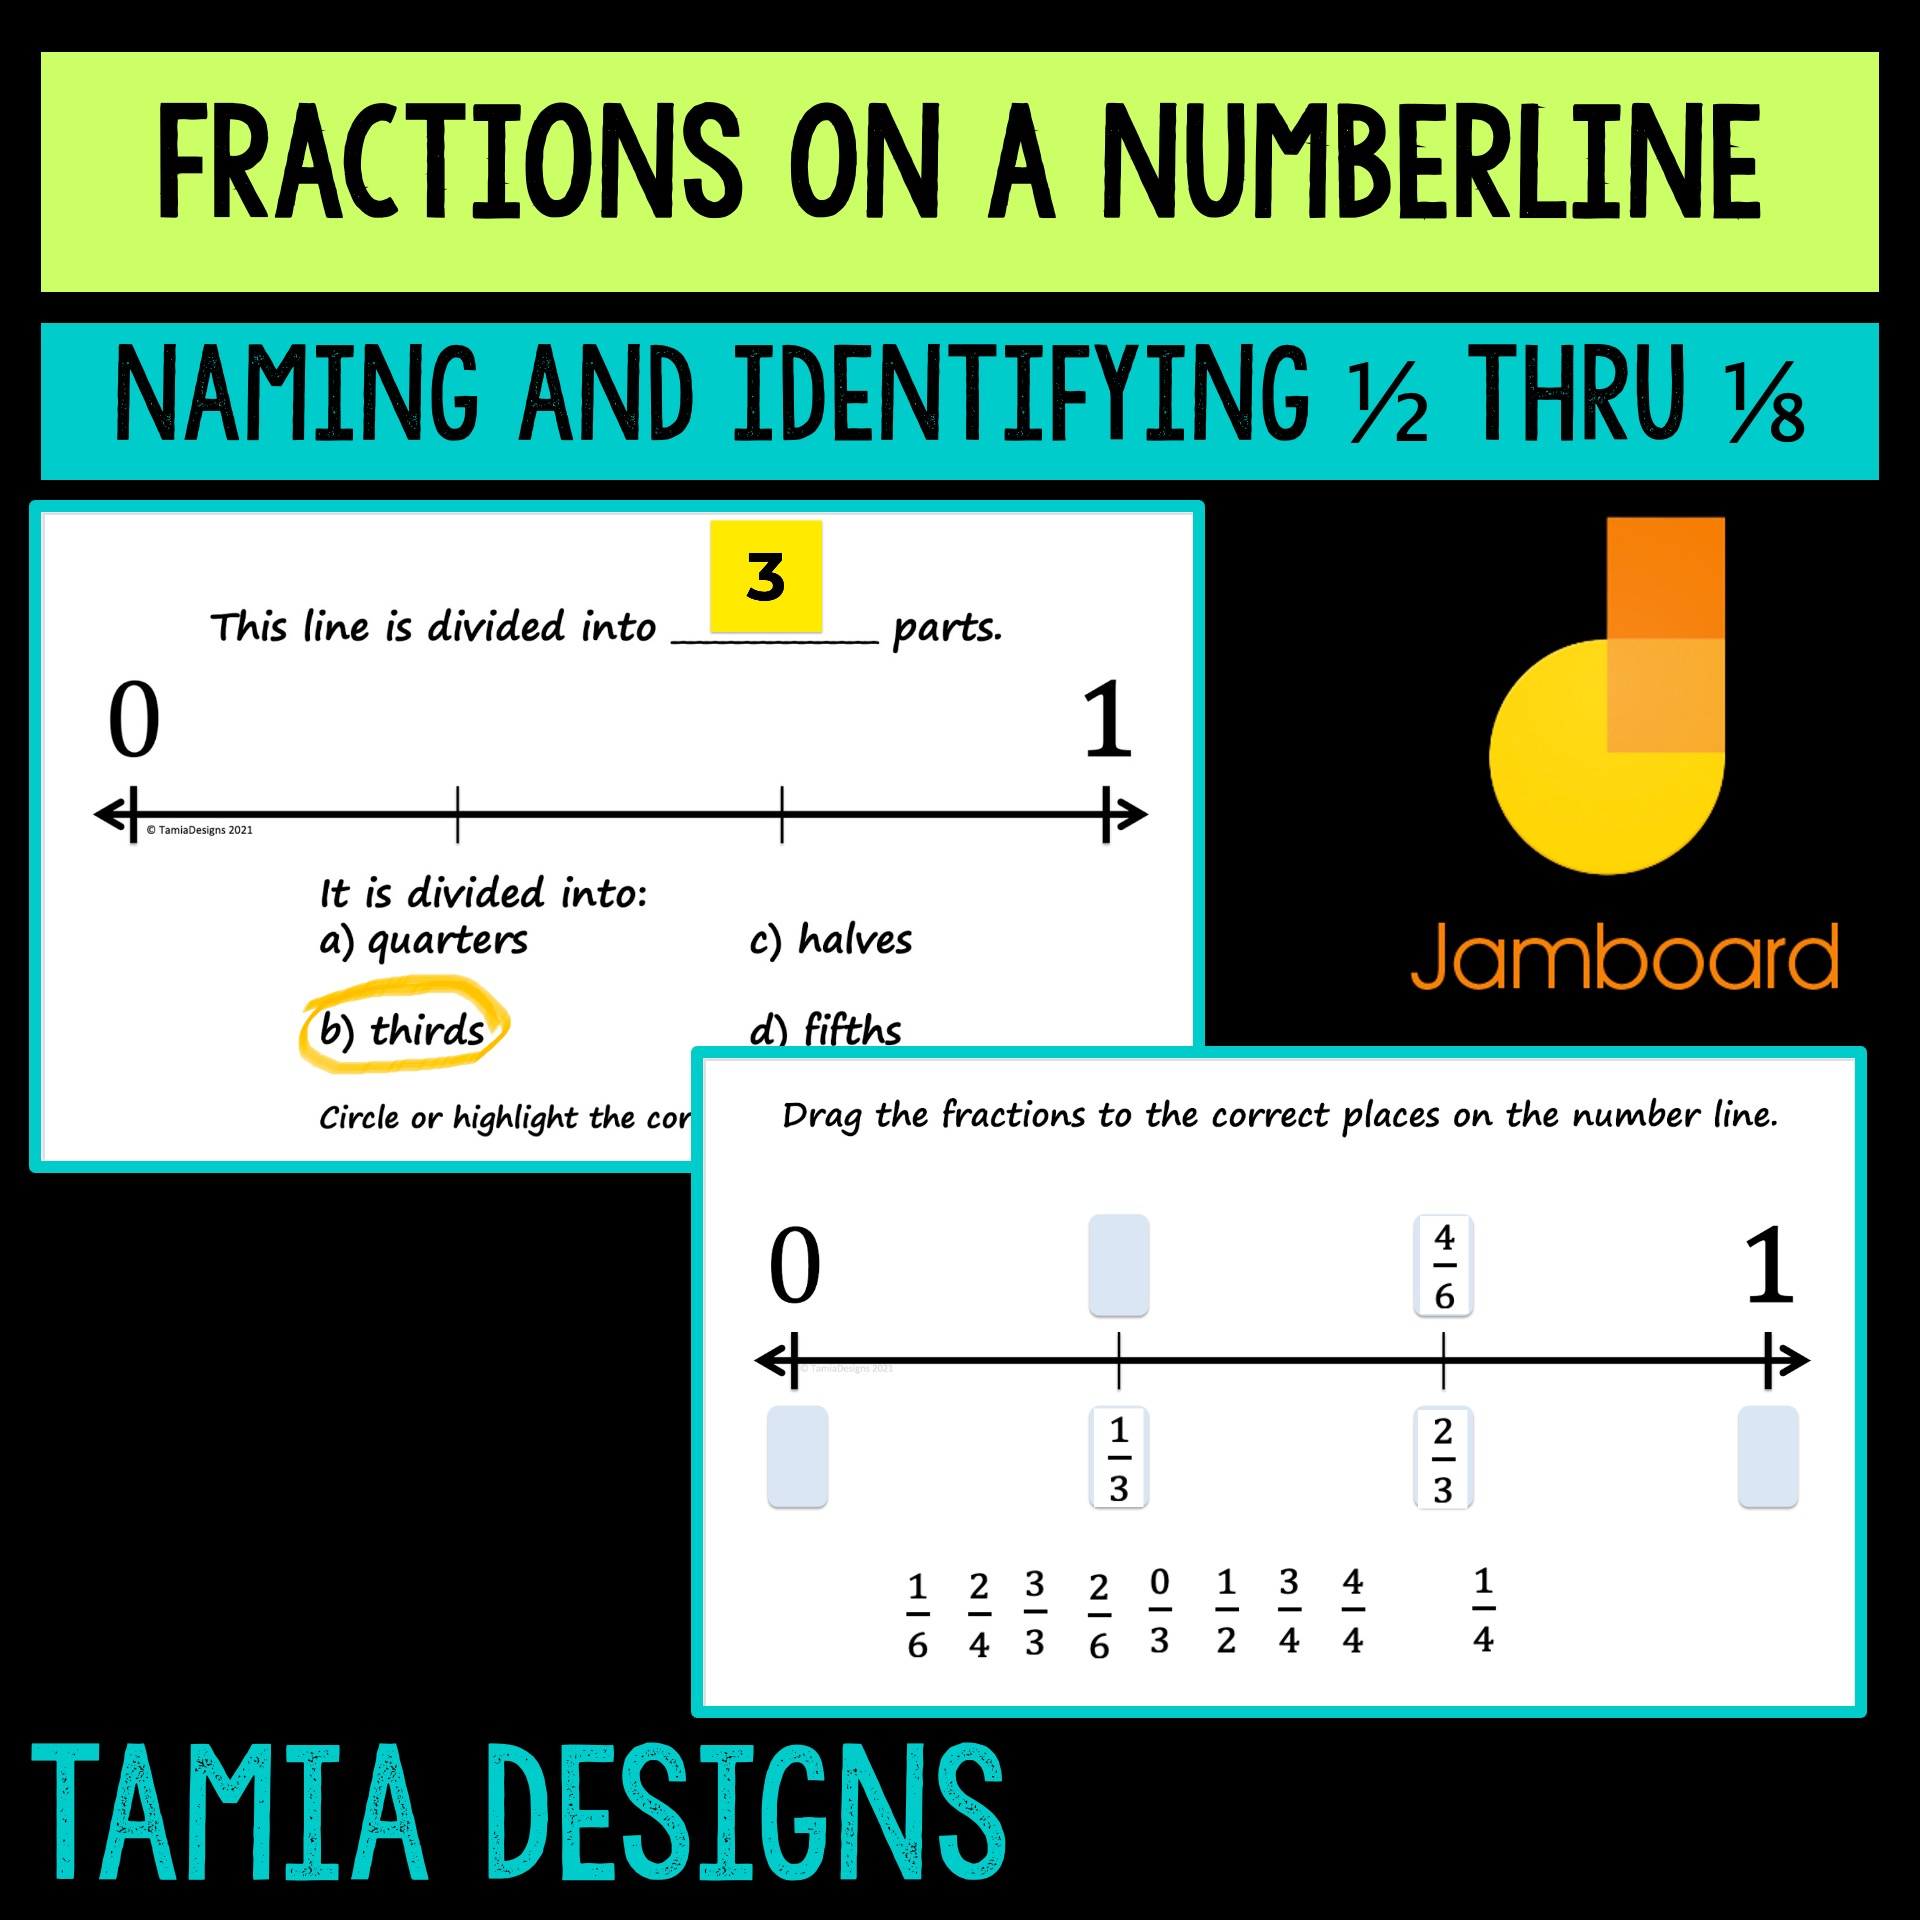 Fractions on a numberline - 1/2 through 1/8 Four Jamboard files's featured image